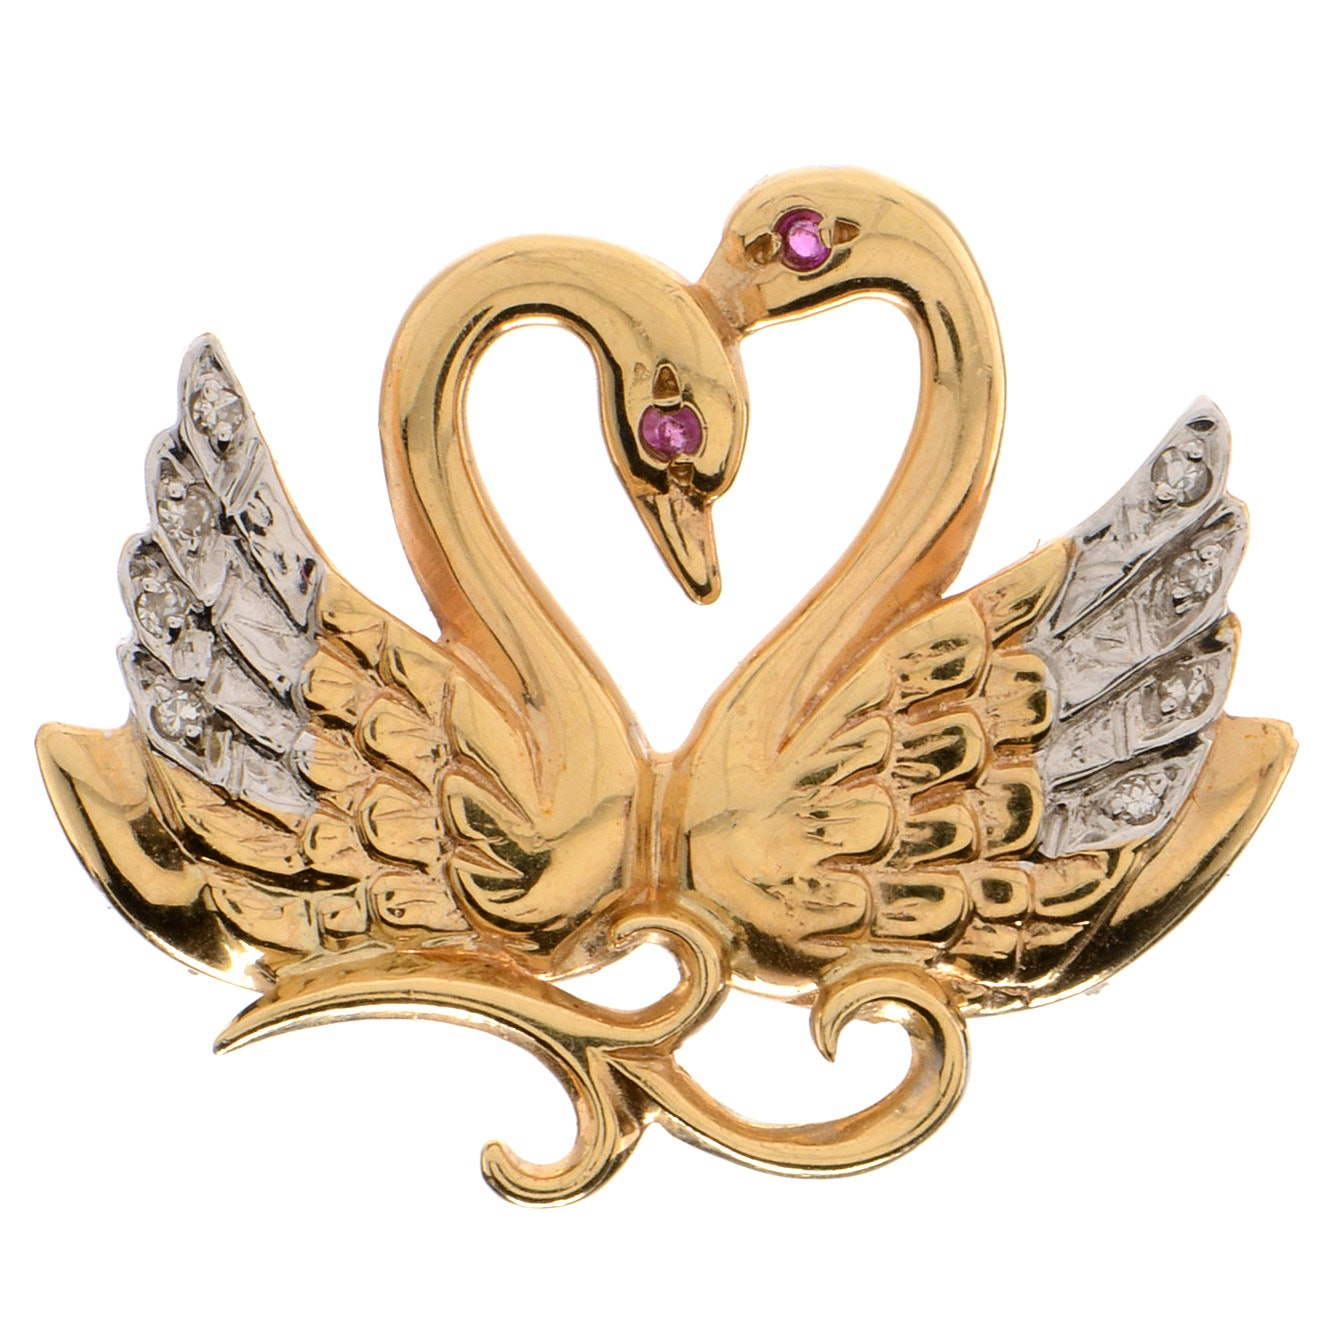 14K Yellow Gold and Diamond Swan Brooch